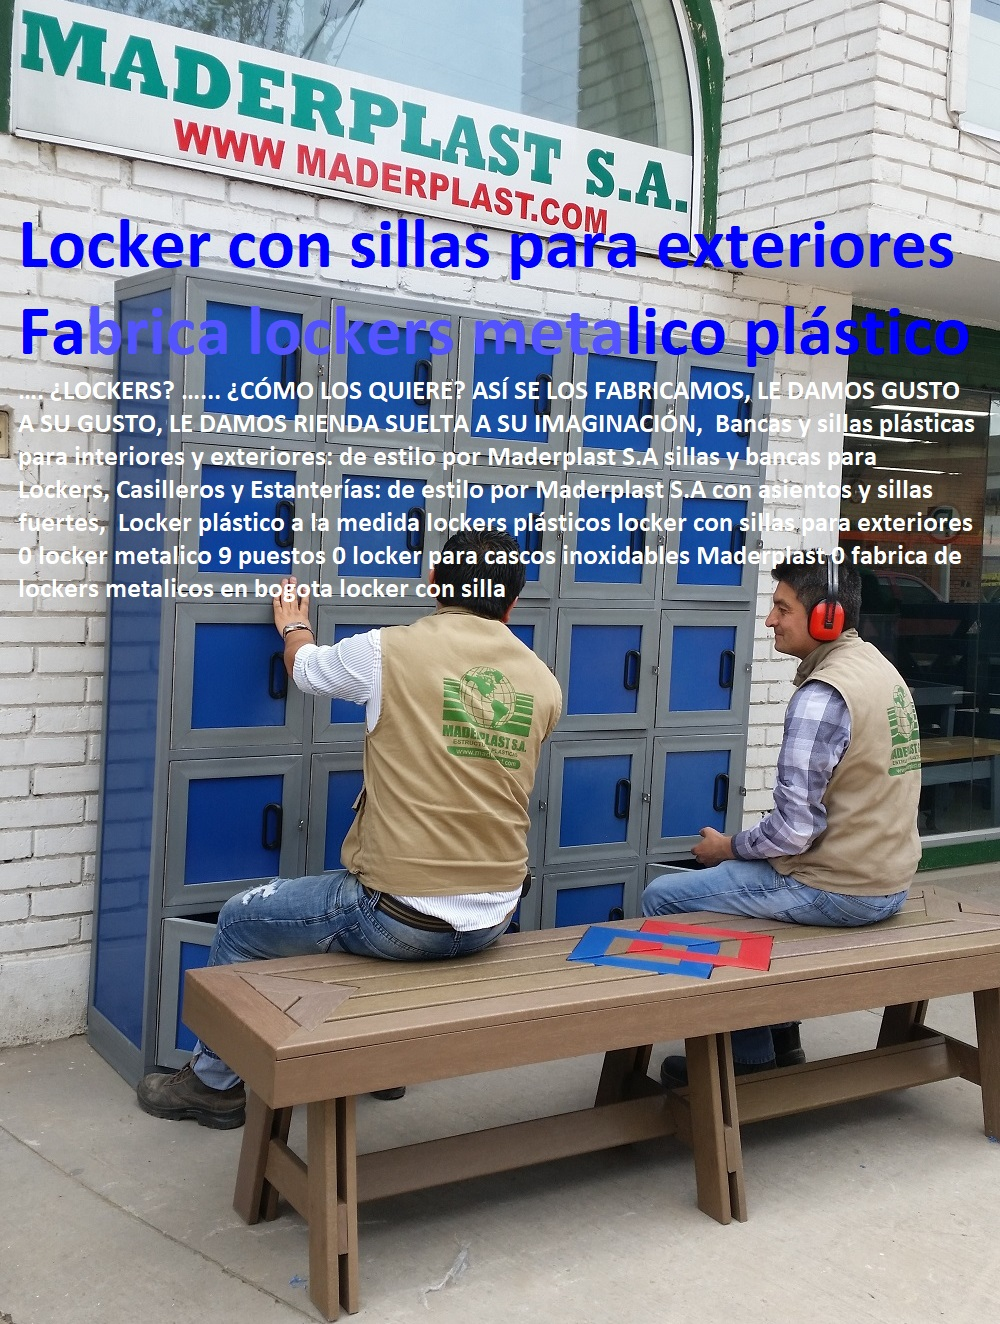 Locker plástico a la medida lockers plásticos locker con sillas para exteriores 0 locker metalico 9 puestos 0 locker para cascos inoxidables Maderplast 0 fabrica de lockers metalicos en bogota locker con silla Locker plástico a la medida lockers plásticos locker con sillas para exteriores 0 locker metalico 9 puestos 0 locker para cascos inoxidables Maderplast 0 fabrica de lockers metalicos en bogota locker con silla